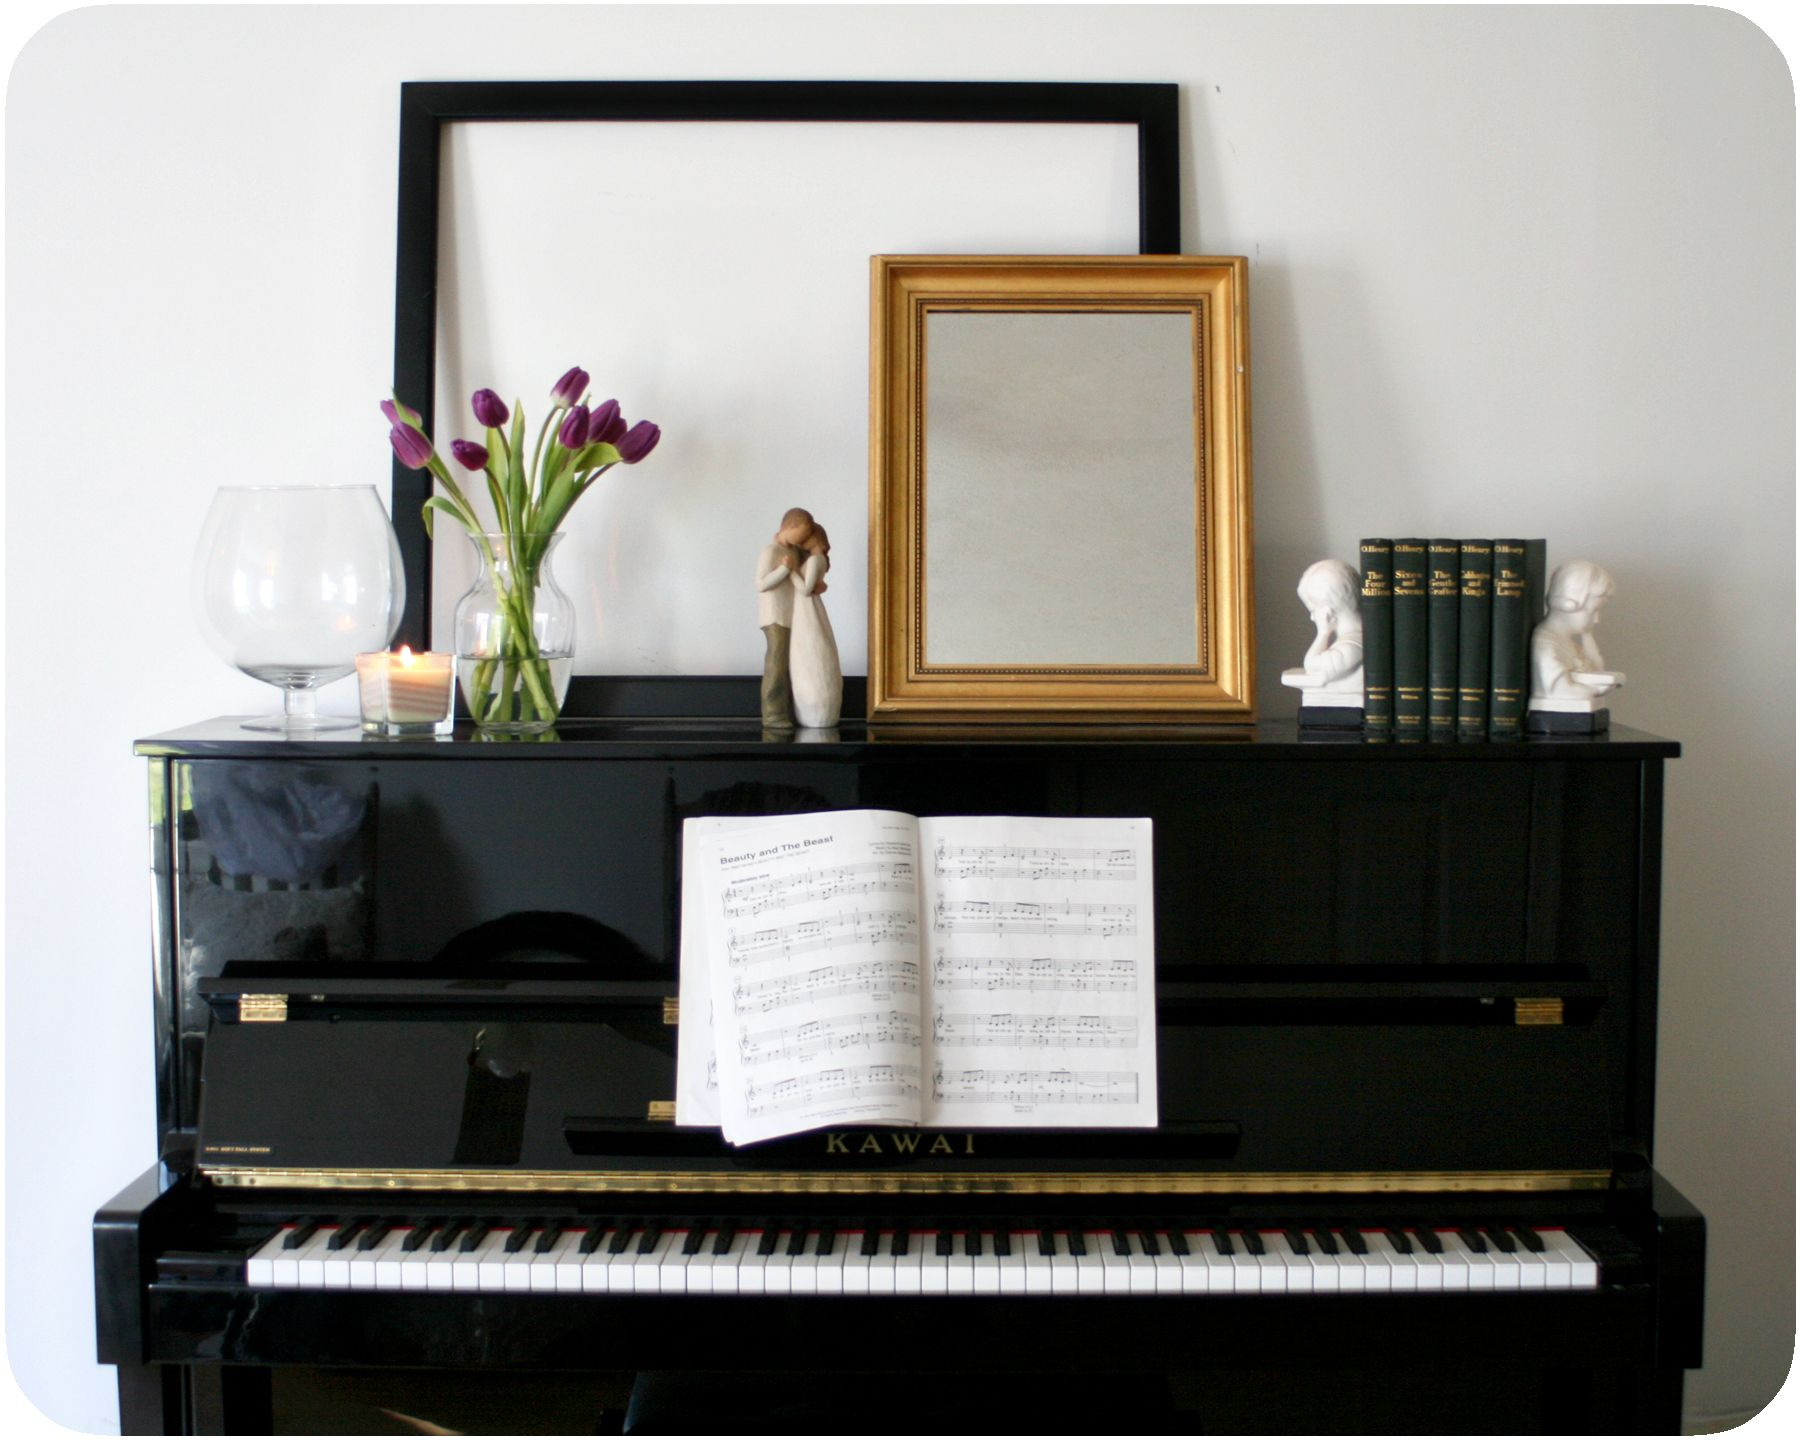 Piano display vignette mantle home decorating ideas diy - Display living room decorating ideas ...